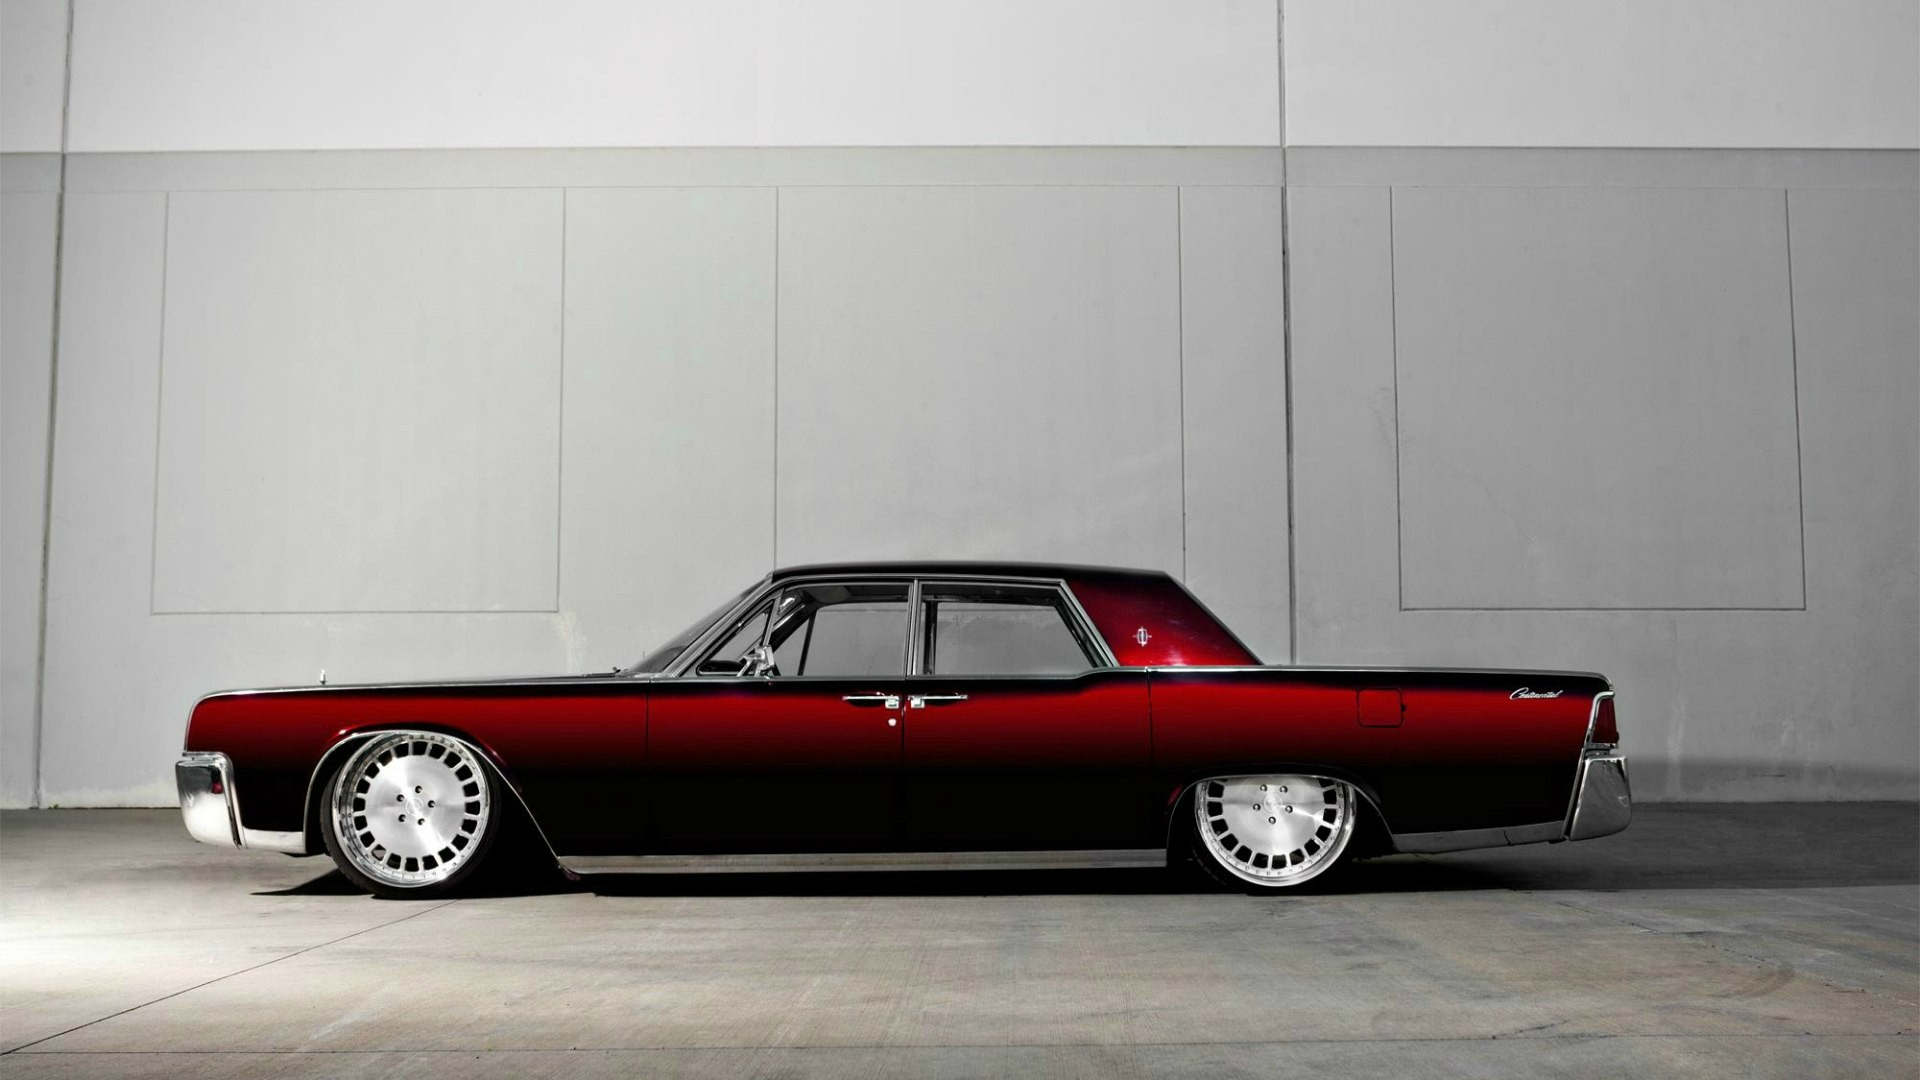 Lincoln Continental Classic Car Lowriders Lowrider Custom